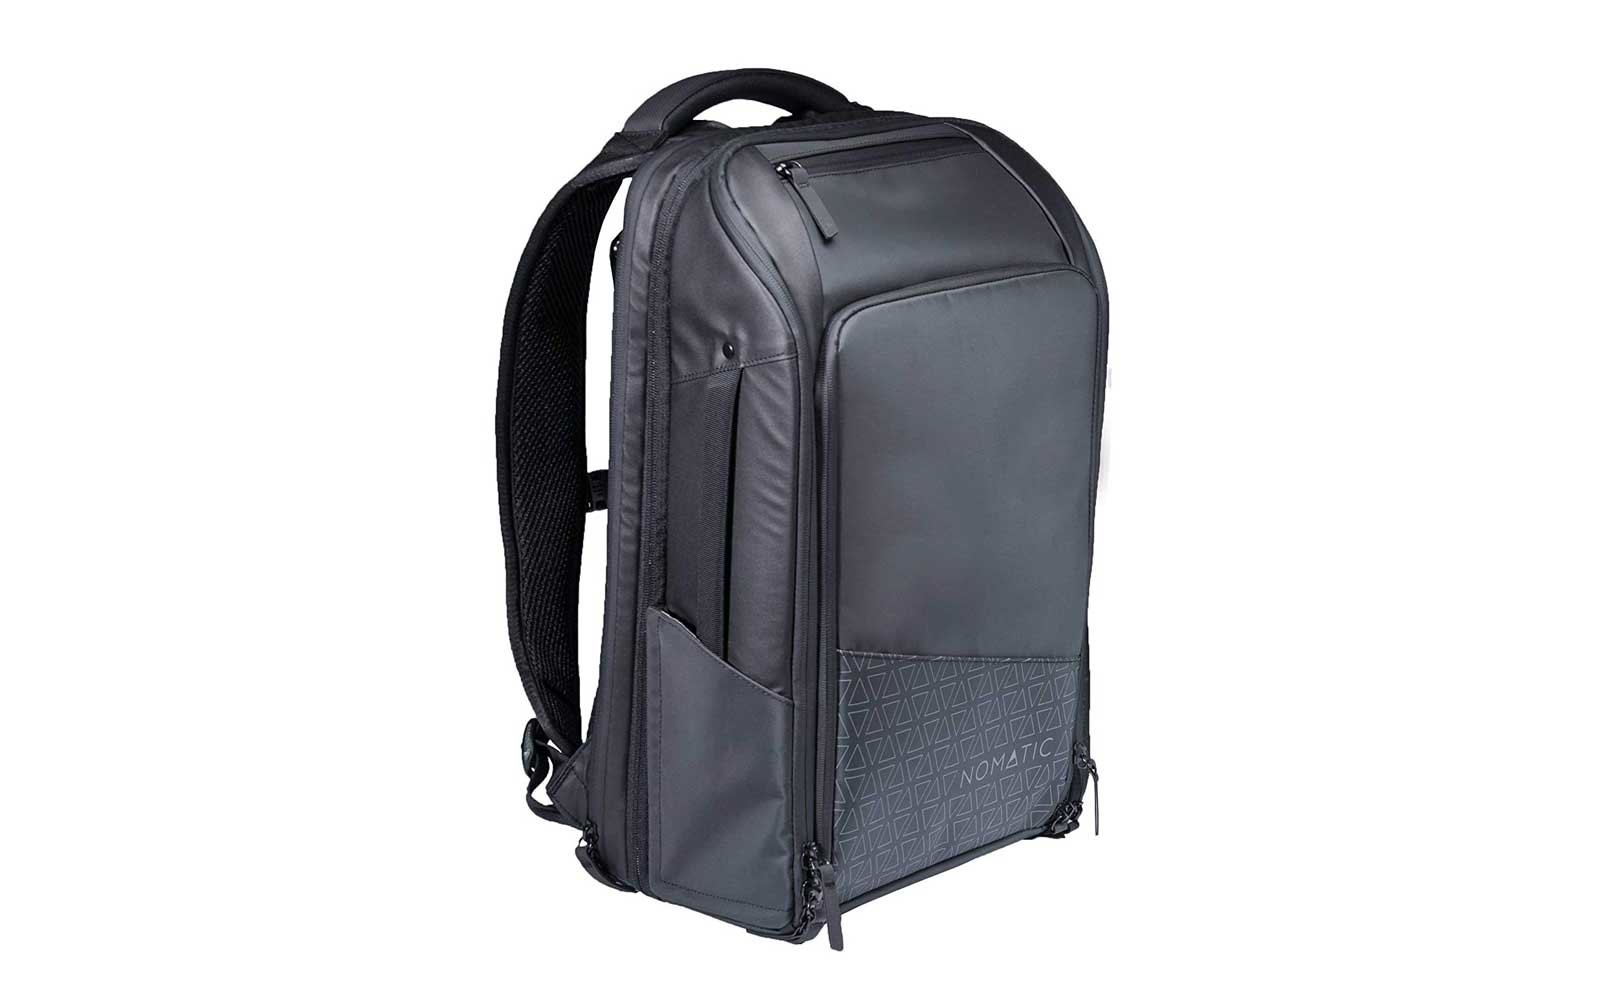 d0348bd120 Best All-in-one Laptop Backpack  Nomatic Travel Pack